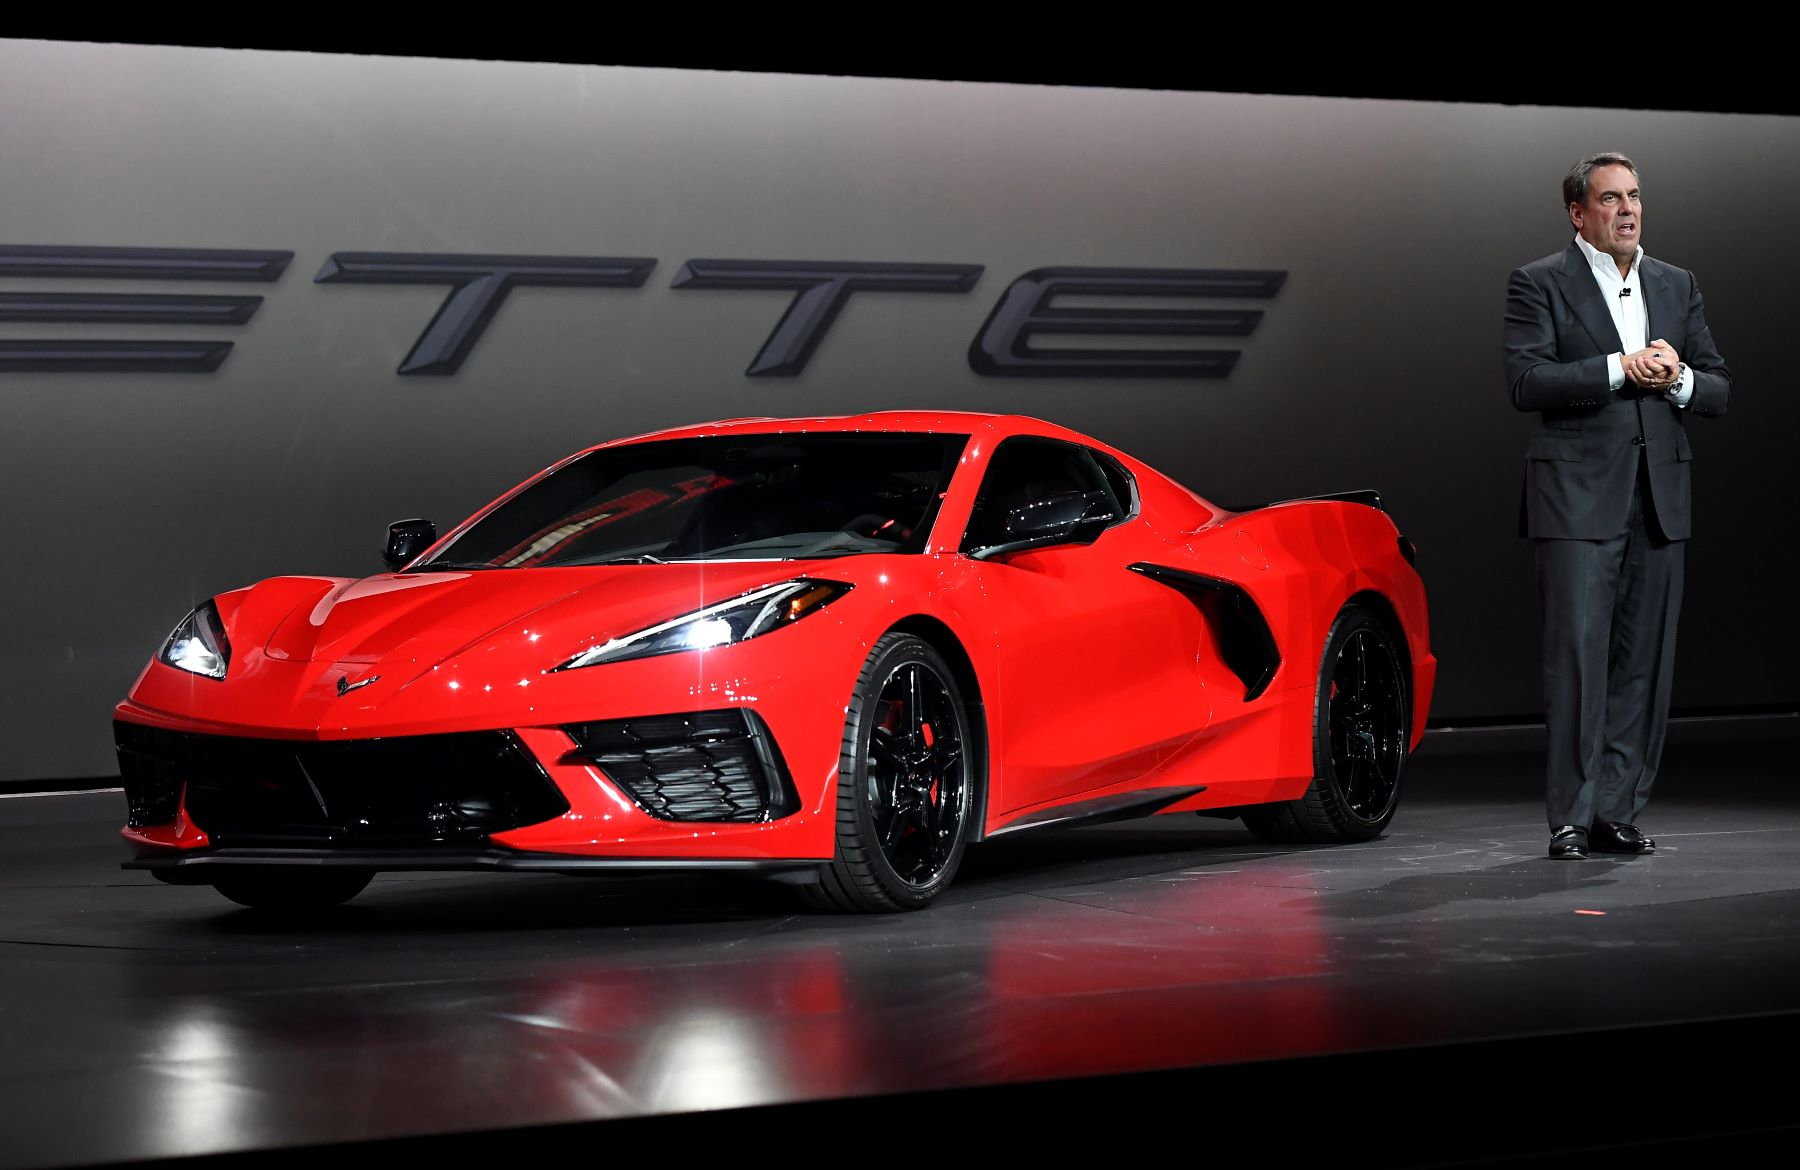 The 2020 Corvette C8 presented by General Motors president Mark Reuss during a news conference in Tustin, California